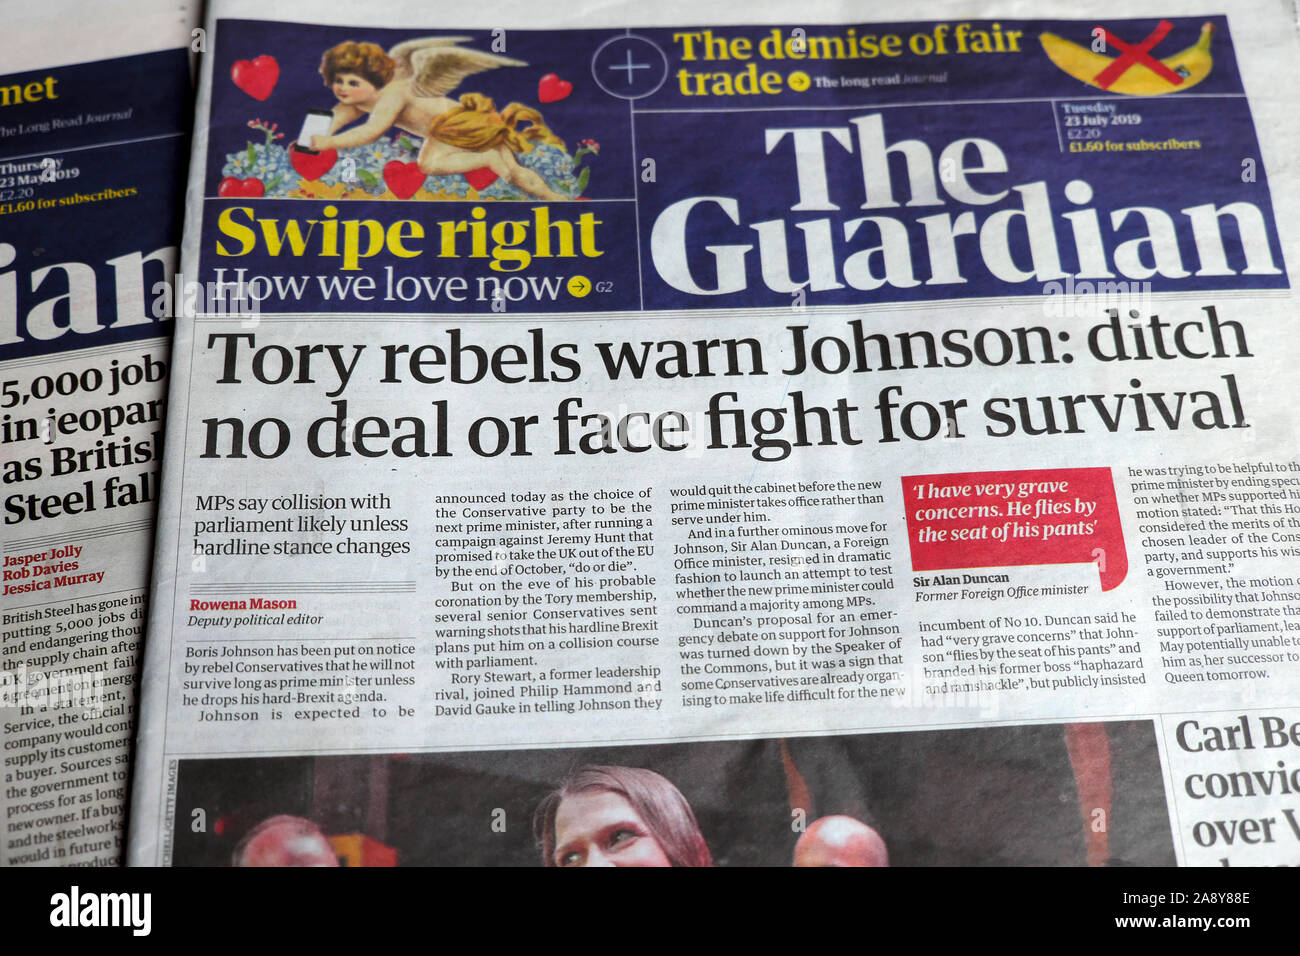 """Tory rebels warn Johnson: ditch no deal or face fight for survival"" newspaper headline in the Guardian London England 23 July 2019 UK Stock Photo"